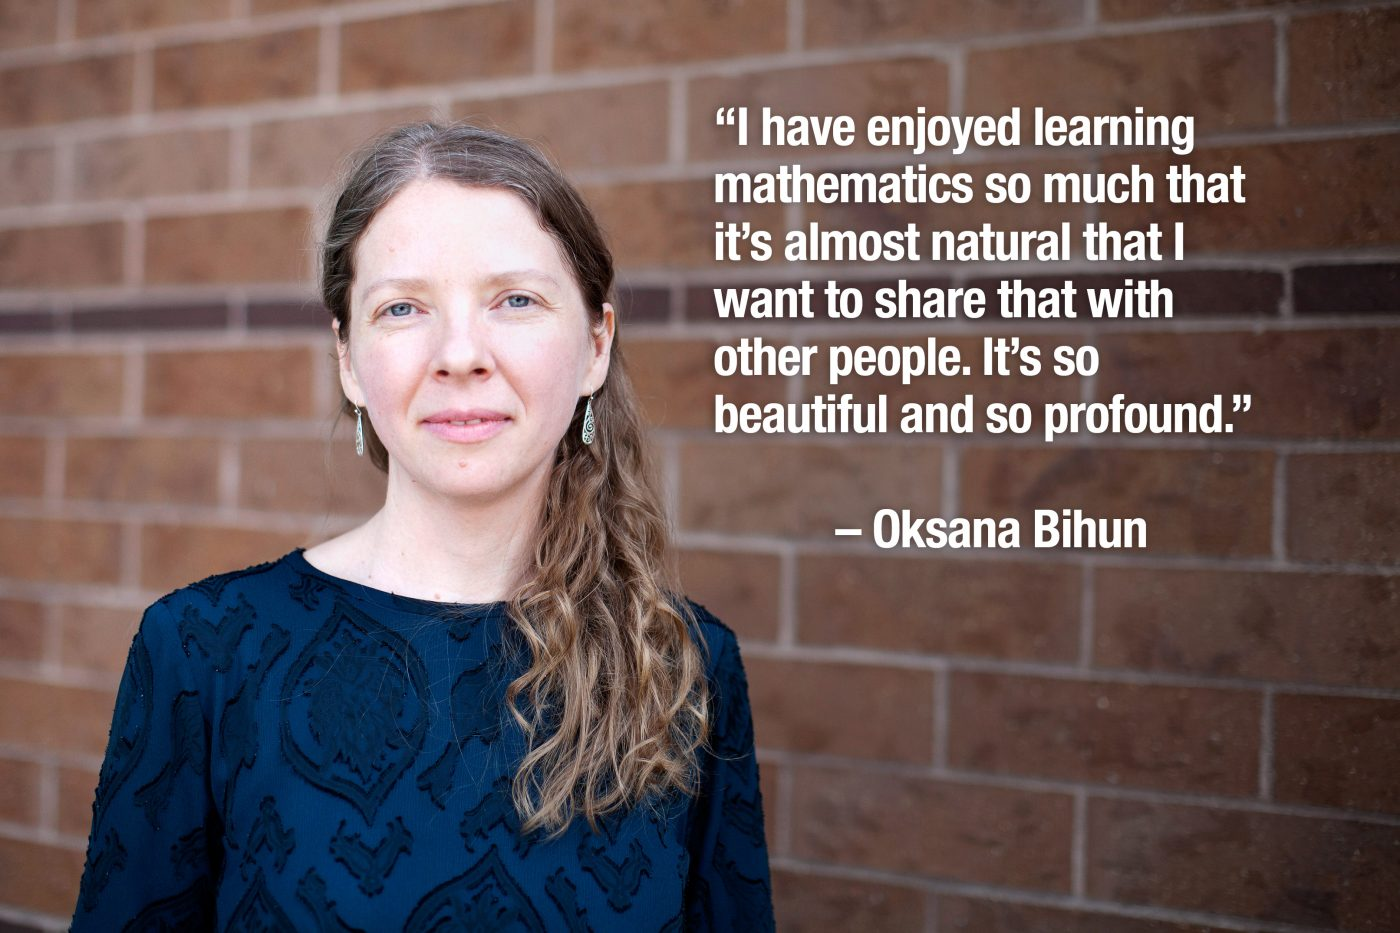 """I have enjoyed learning mathematics so much that it's almost natural that I want to share that with other people. It's so beautiful and so profound."" – Oksana Bihun"